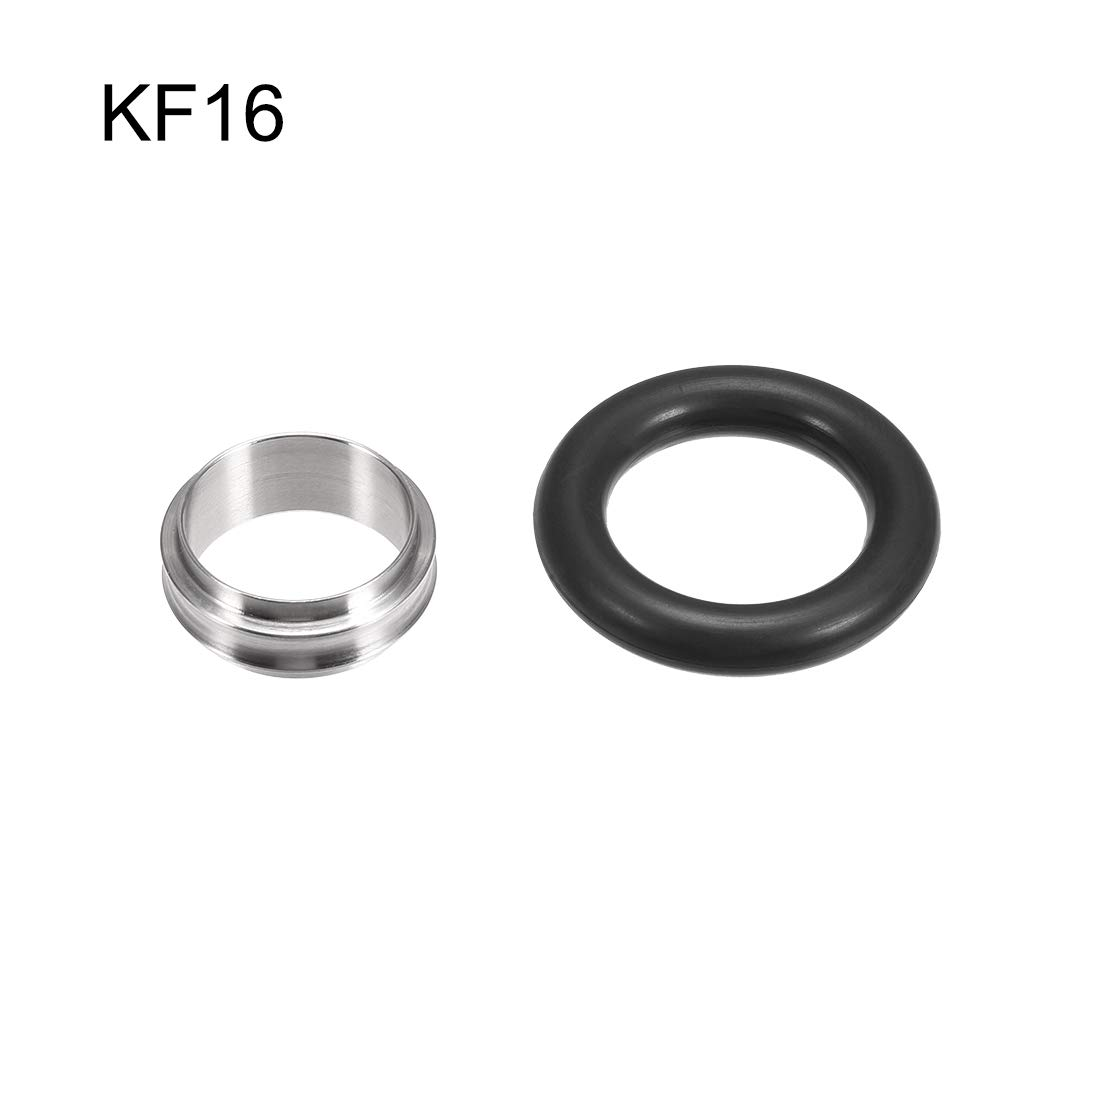 uxcell 2 Pcs Centering Ring KF-16 Vacuum Fittings ISO-KF Flange 29.6mm X 15.6mm Fluororubber O-Ring